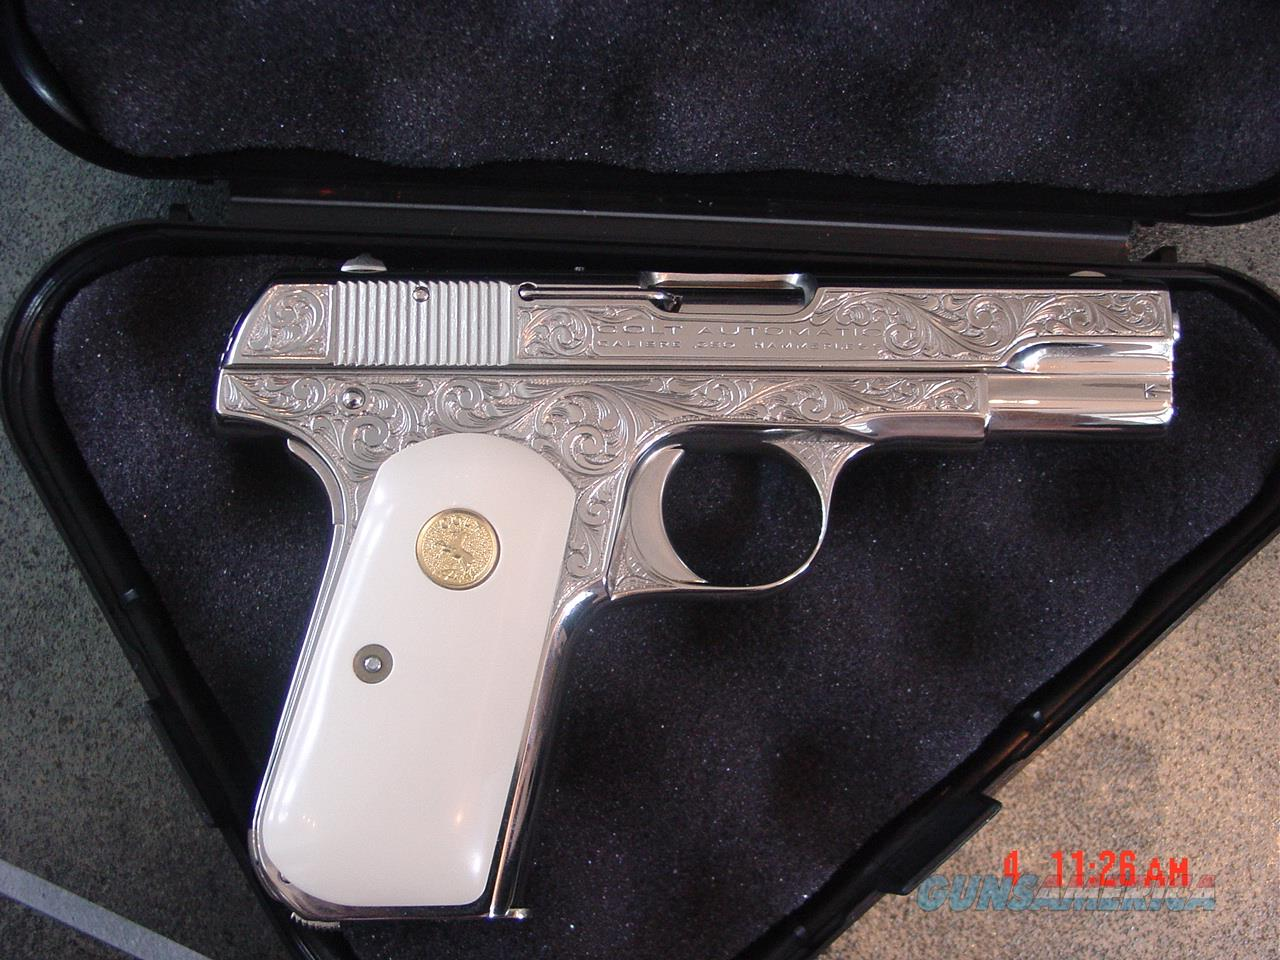 Colt 1908 380auto, master engraved & refinished nickel by S.Leis,bonded ivory grips,certificate,made 1925,a rare work of art-nicer in person-awesome !!  Guns > Pistols > Colt Automatic Pistols (.25, .32, & .380 cal)